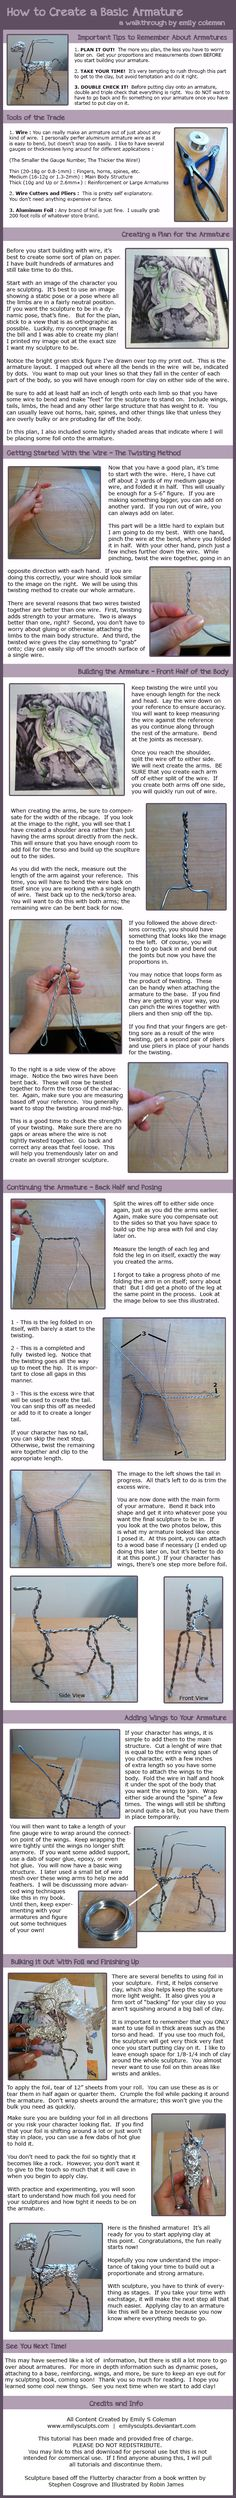 http://emilysculpts.deviantart.com/art/Tutorial-Building-an-Armature-for-a-Sculpture-322756422